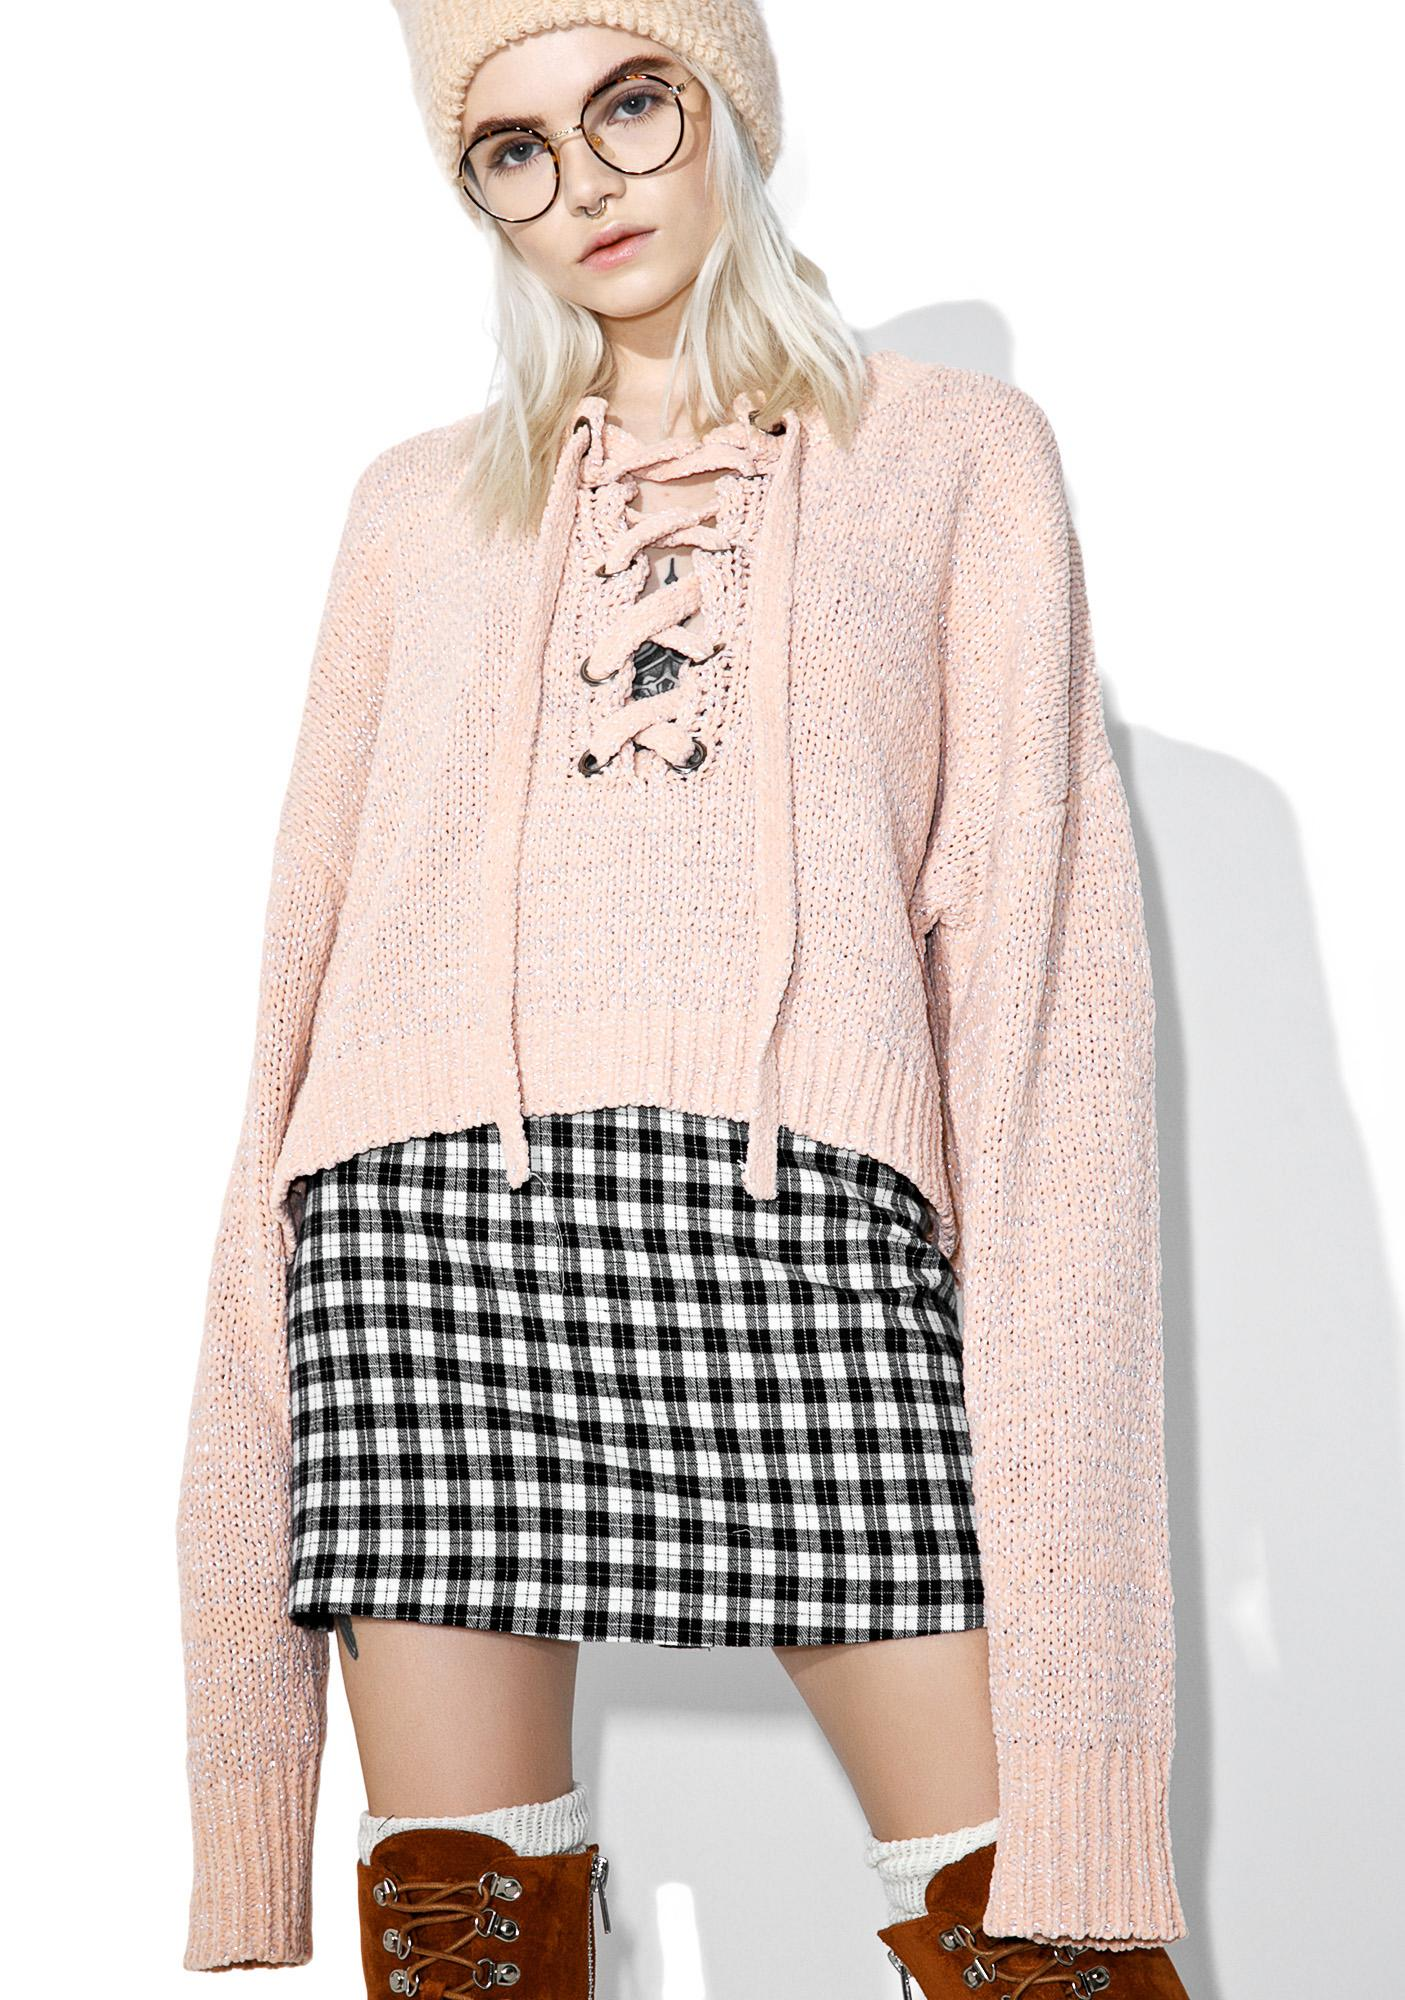 Oh Gee Lace-Up Sweater